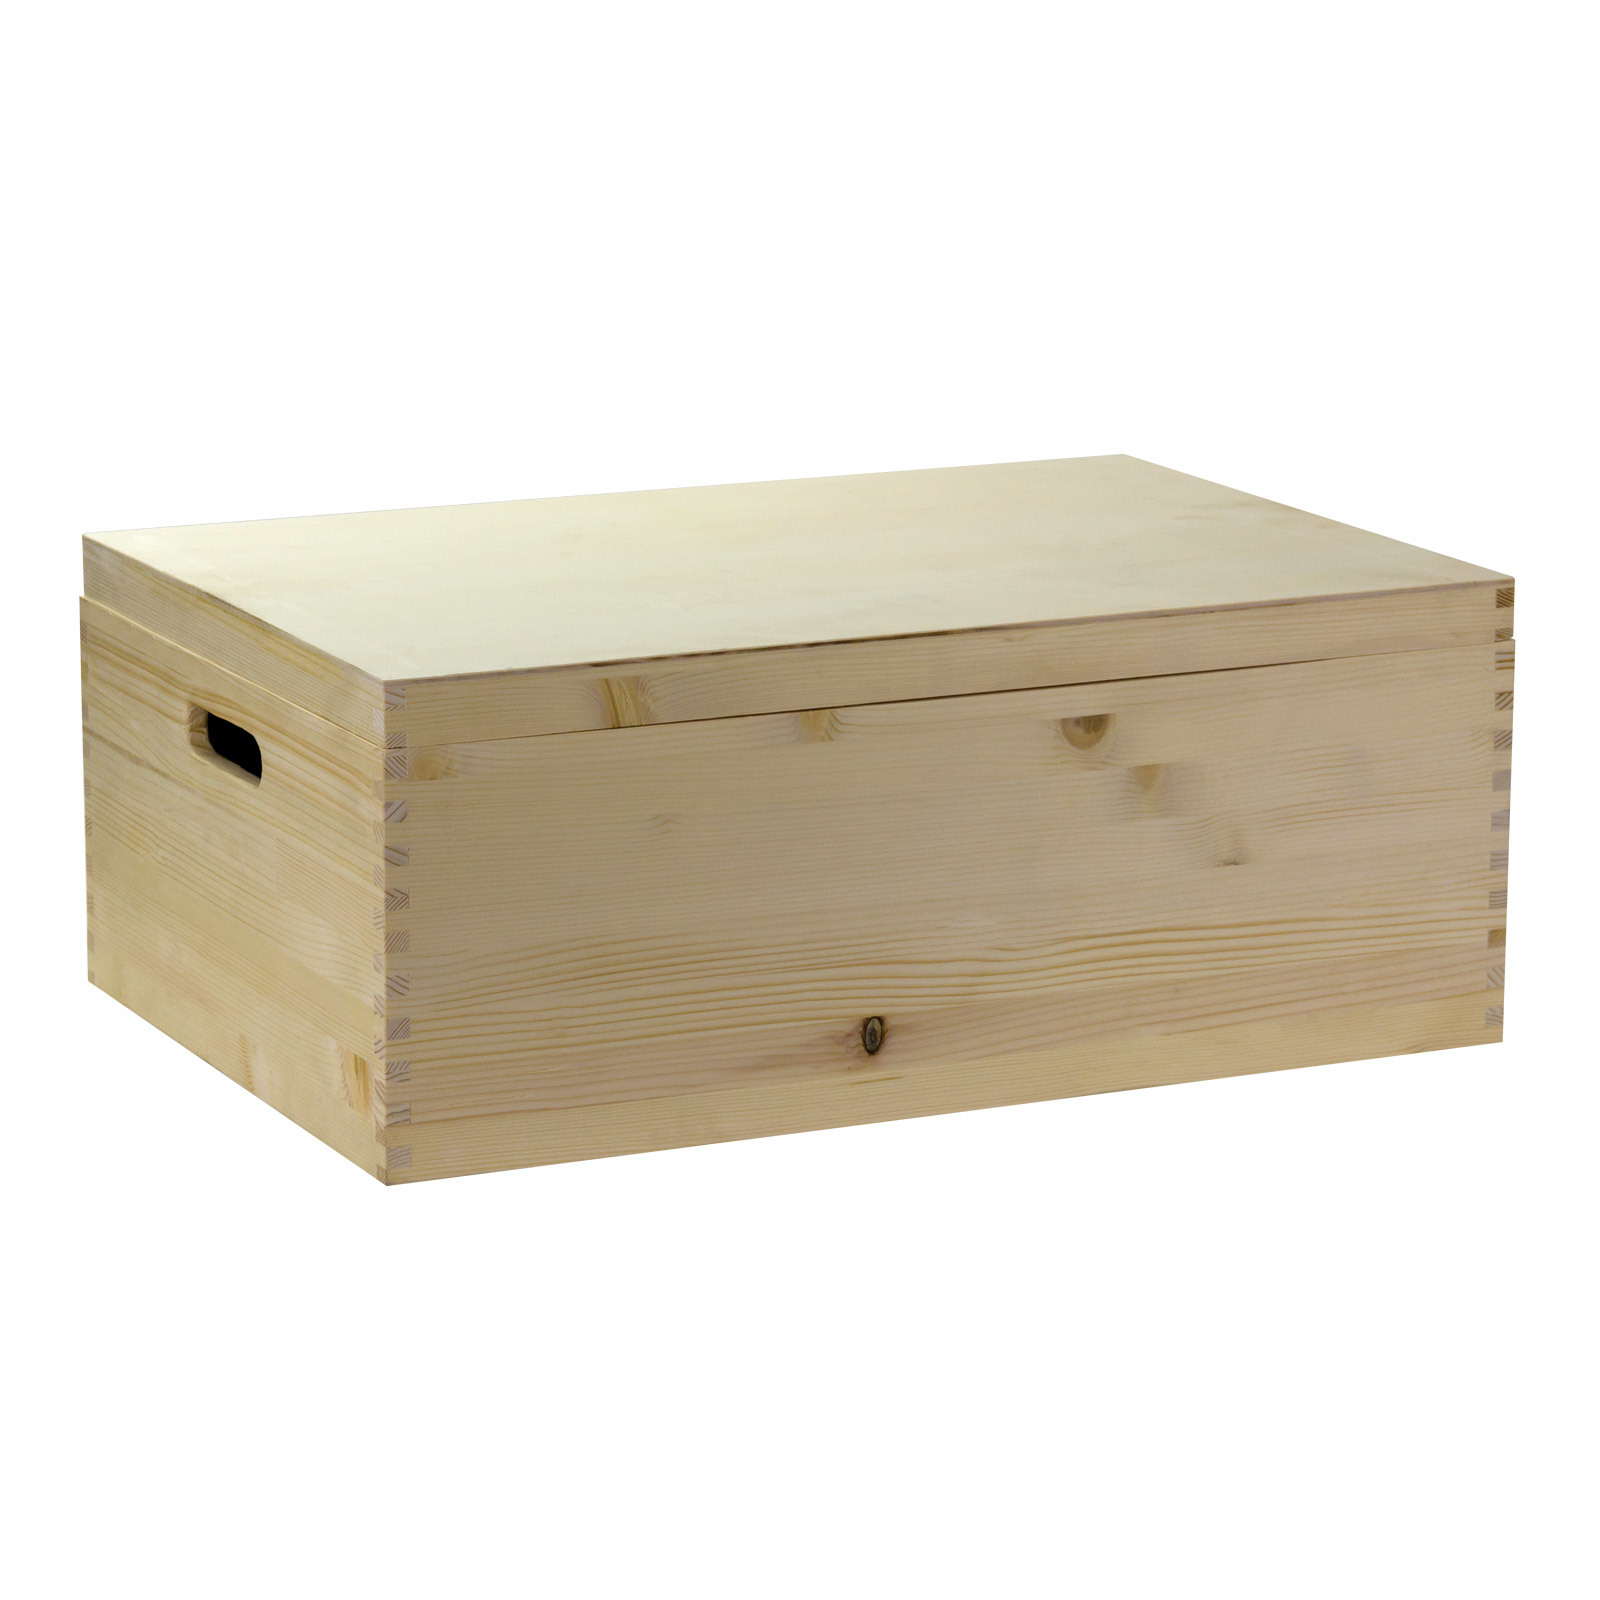 universal holz kiste box spielzeugkiste holzkiste holzbox mit deckel 60x40x24 cm ebay. Black Bedroom Furniture Sets. Home Design Ideas